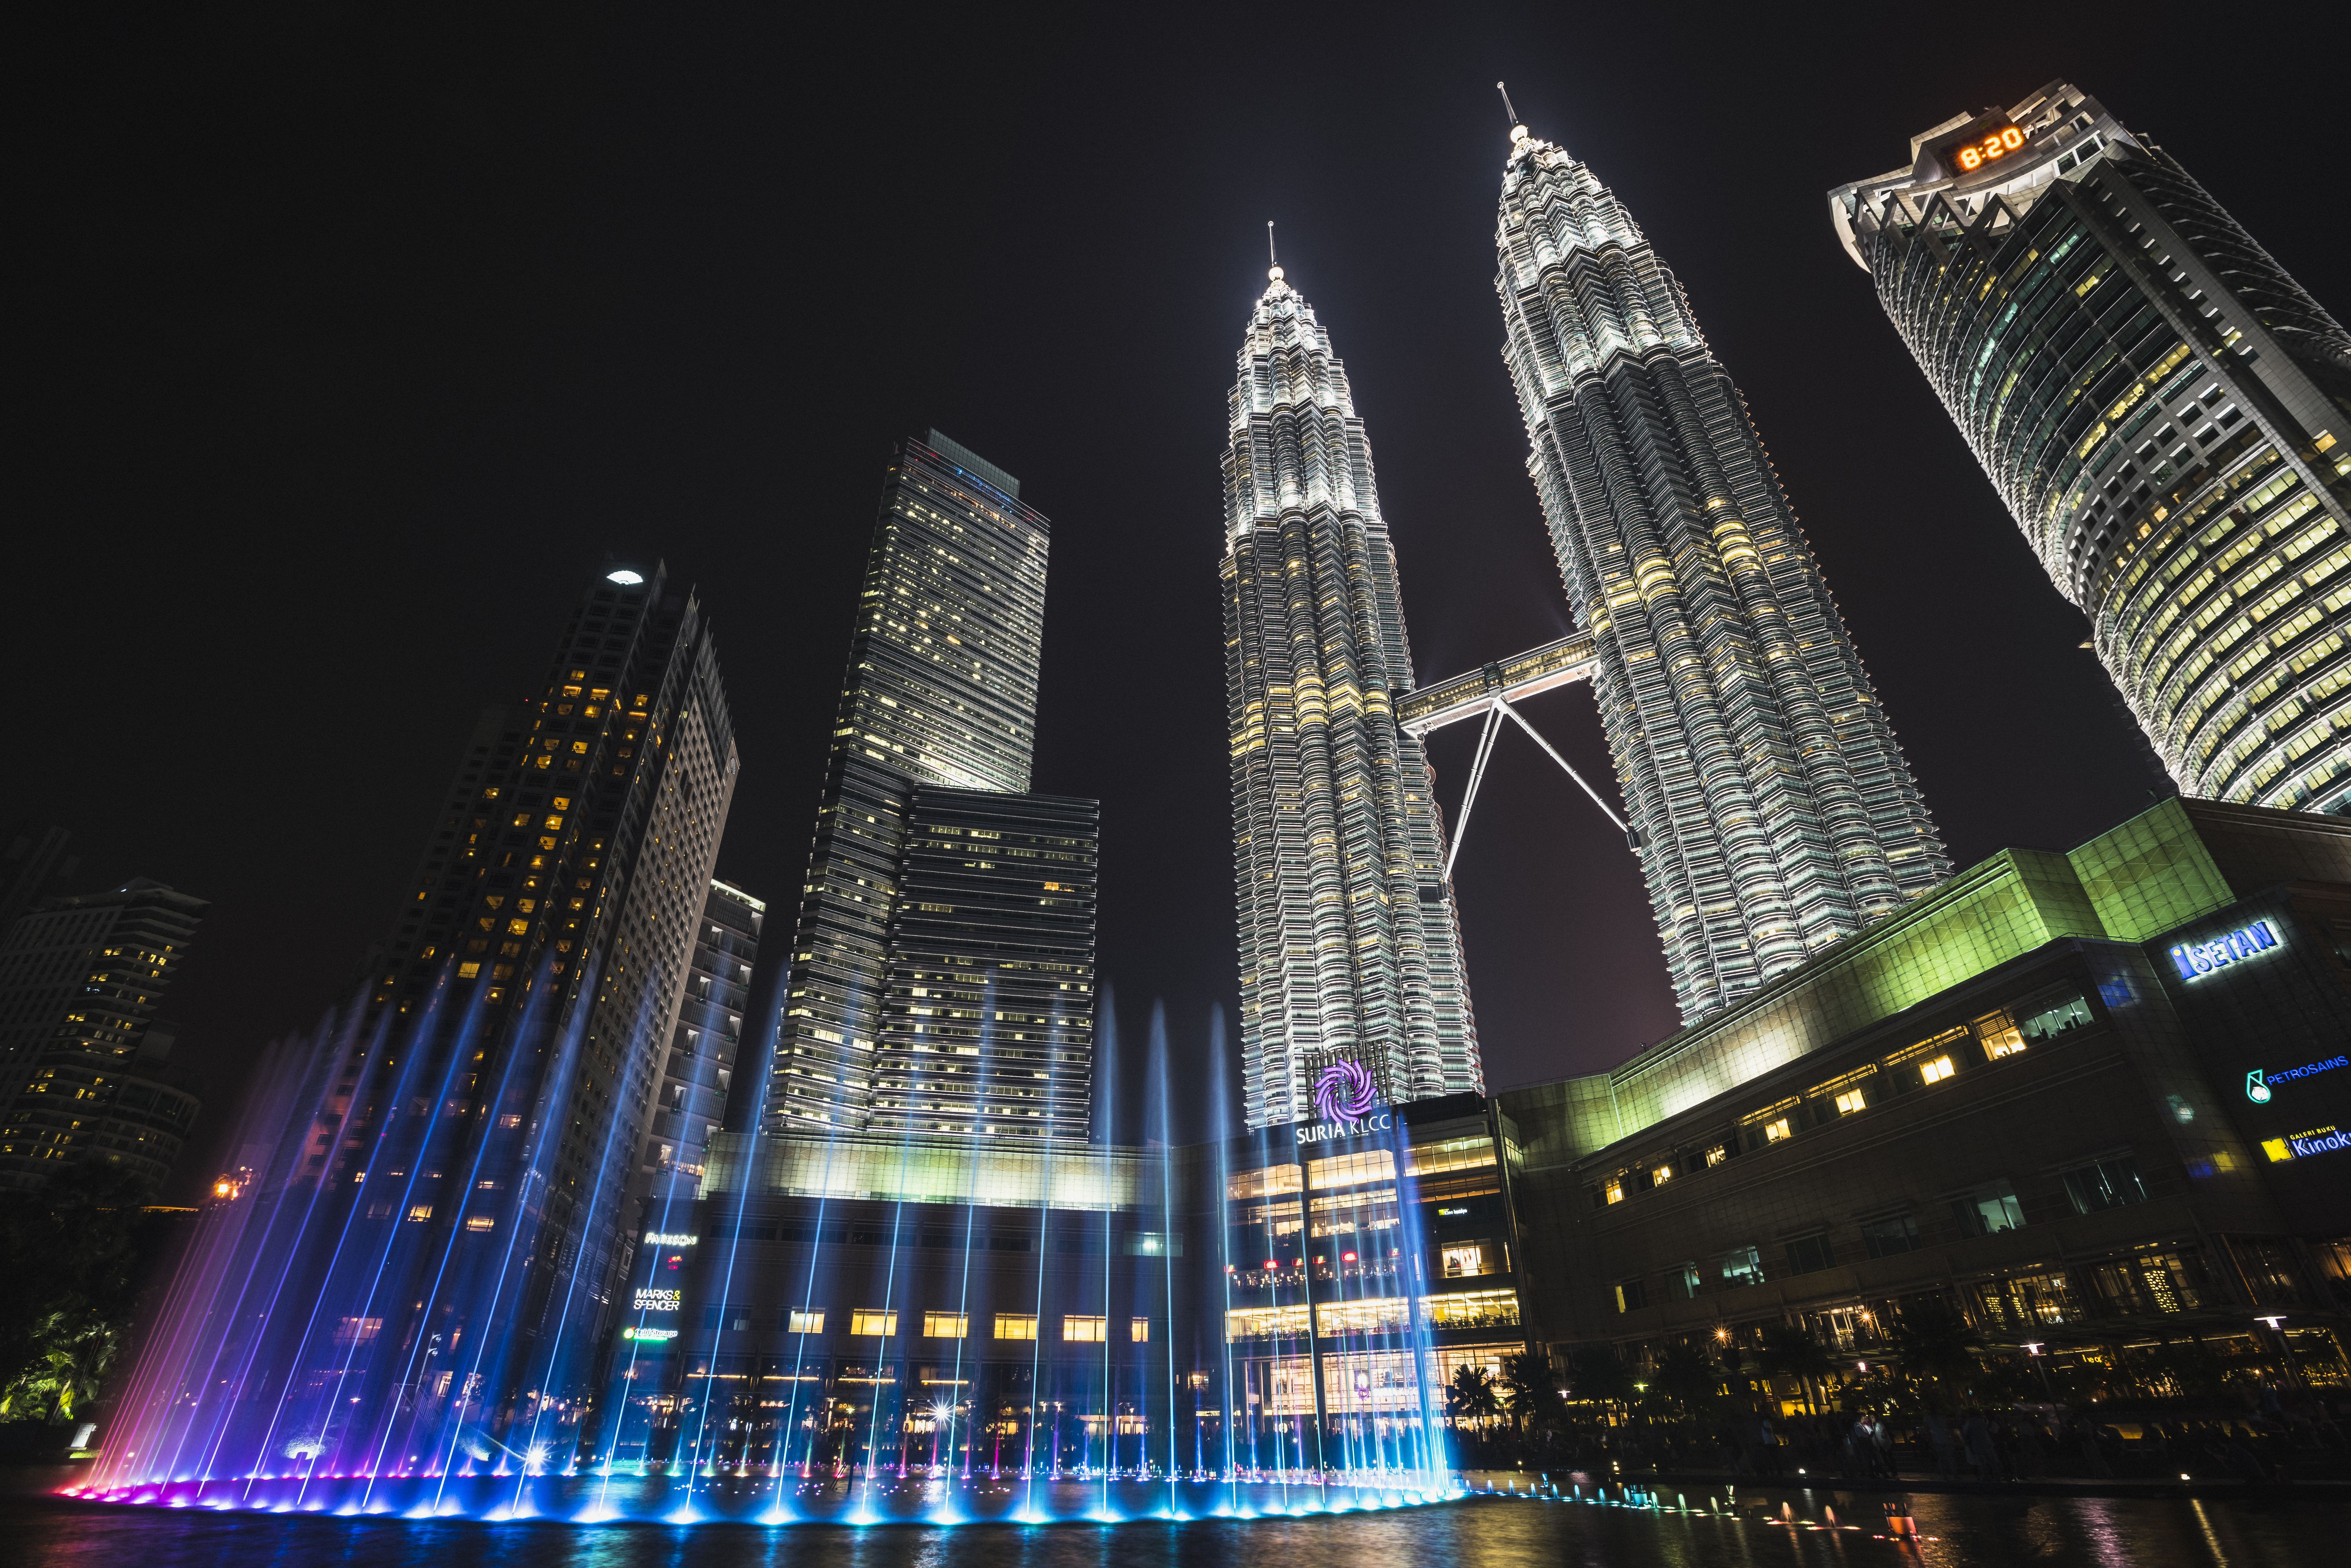 KLCC fountains in front of the Petronas Towers